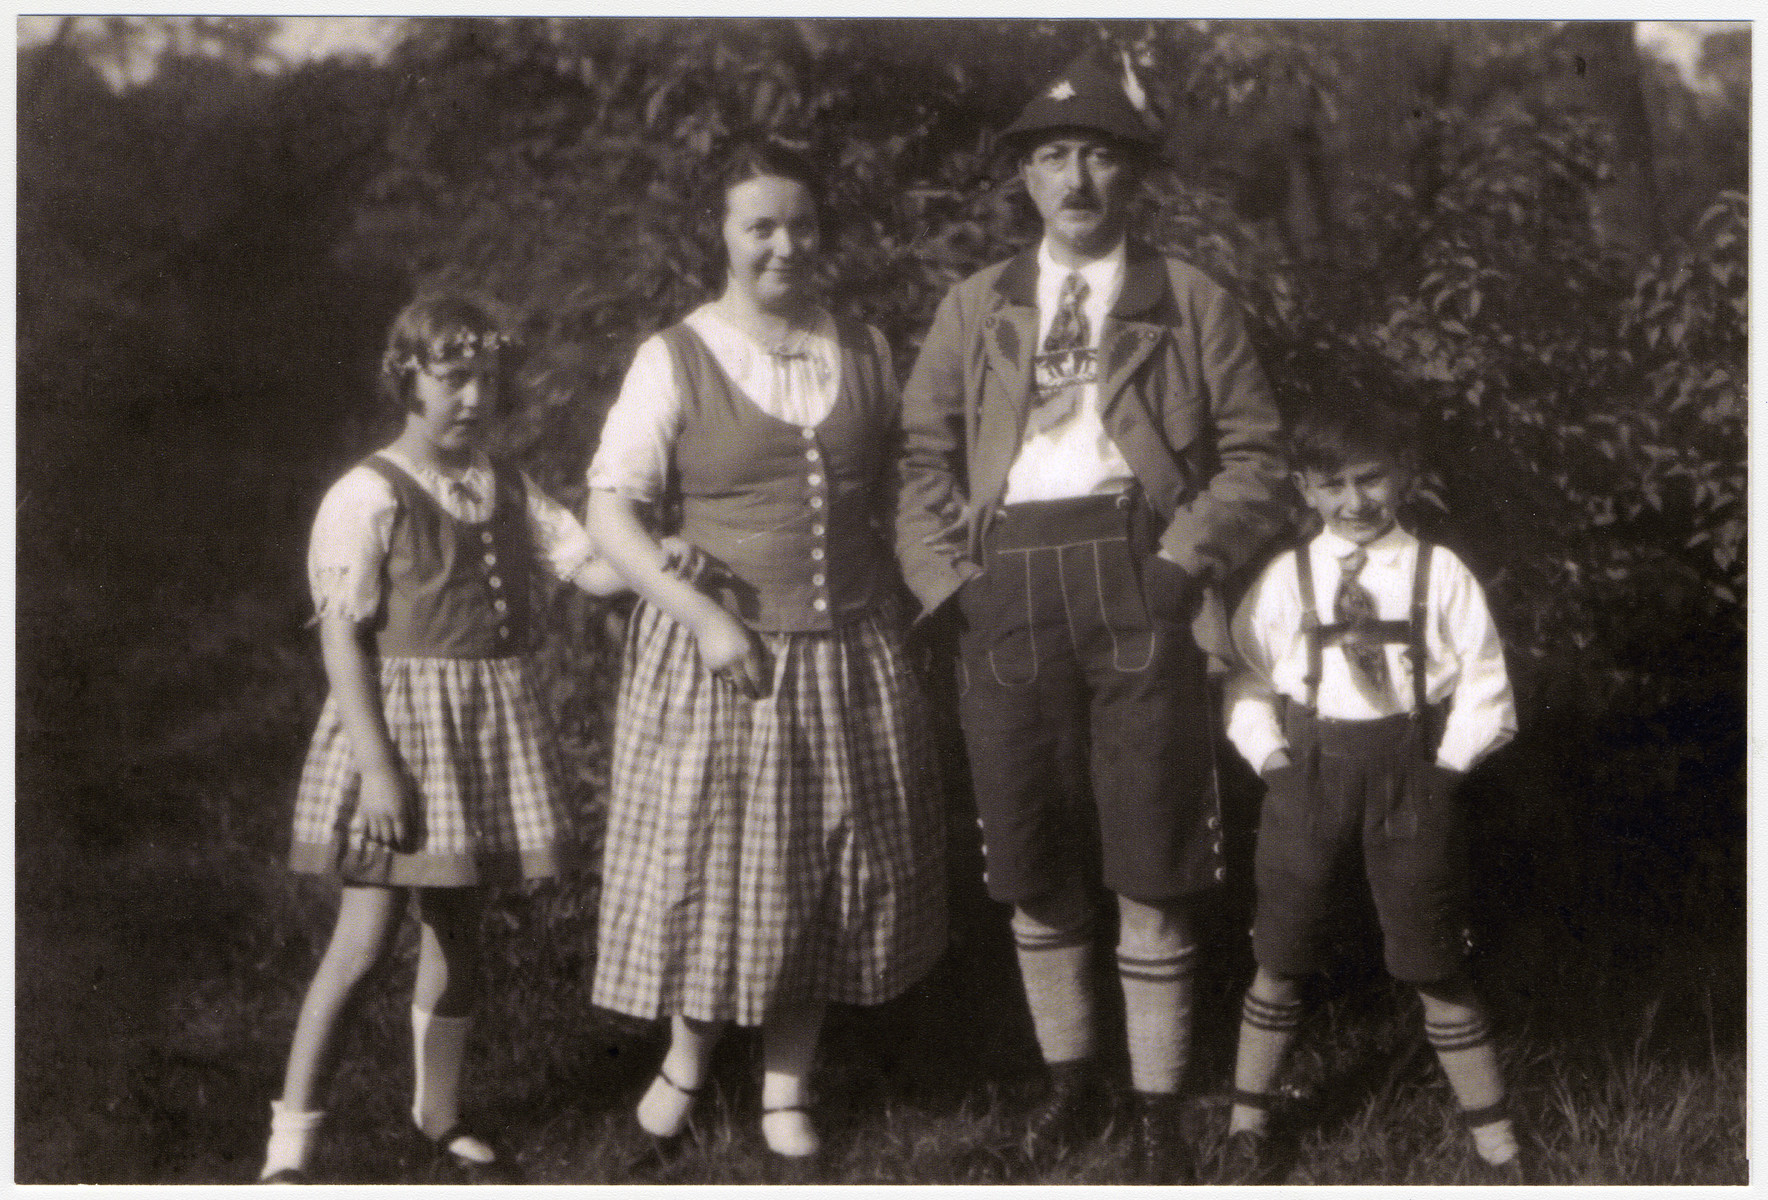 From left to right stand Ilse, Frieda, Max, and Hans Heinz in their Lederhosen and Dirndls.